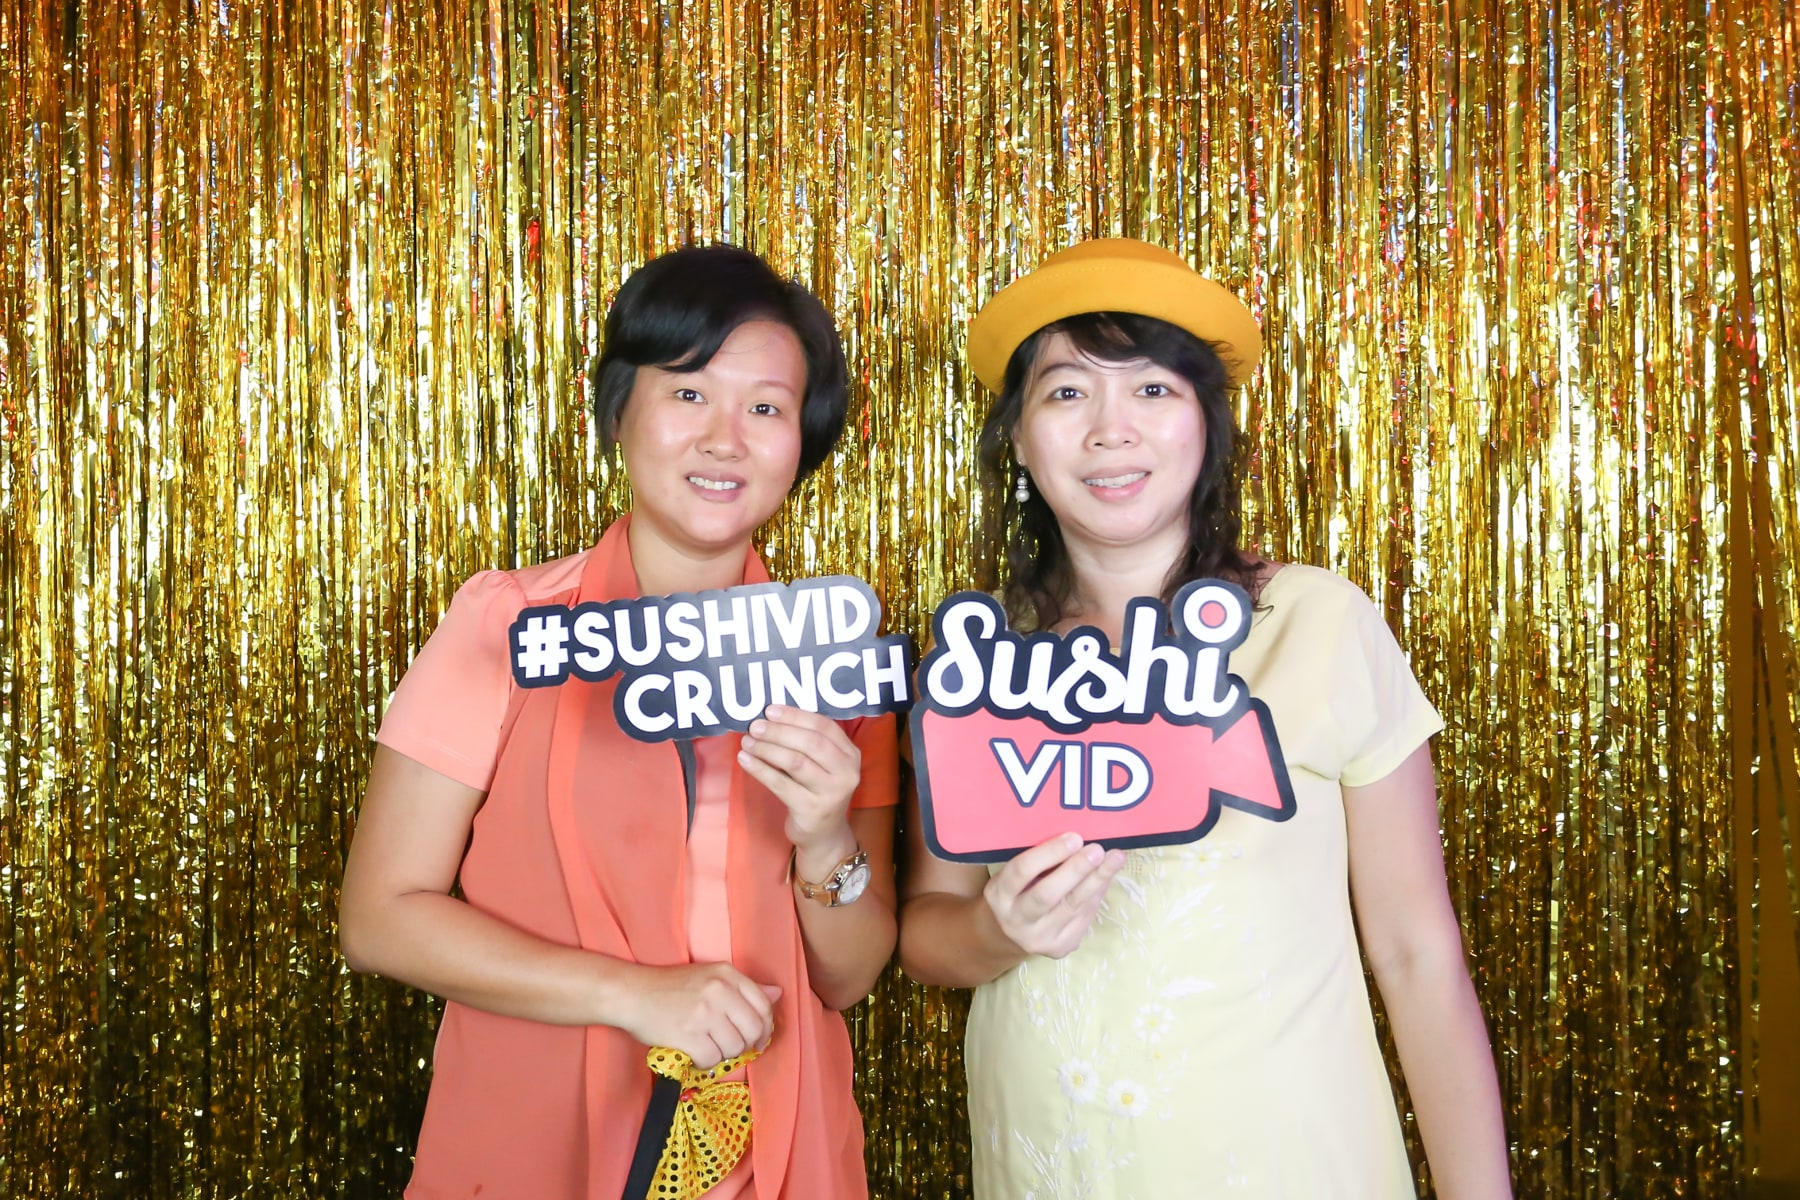 Sushivid+crunch+tagbooth+151